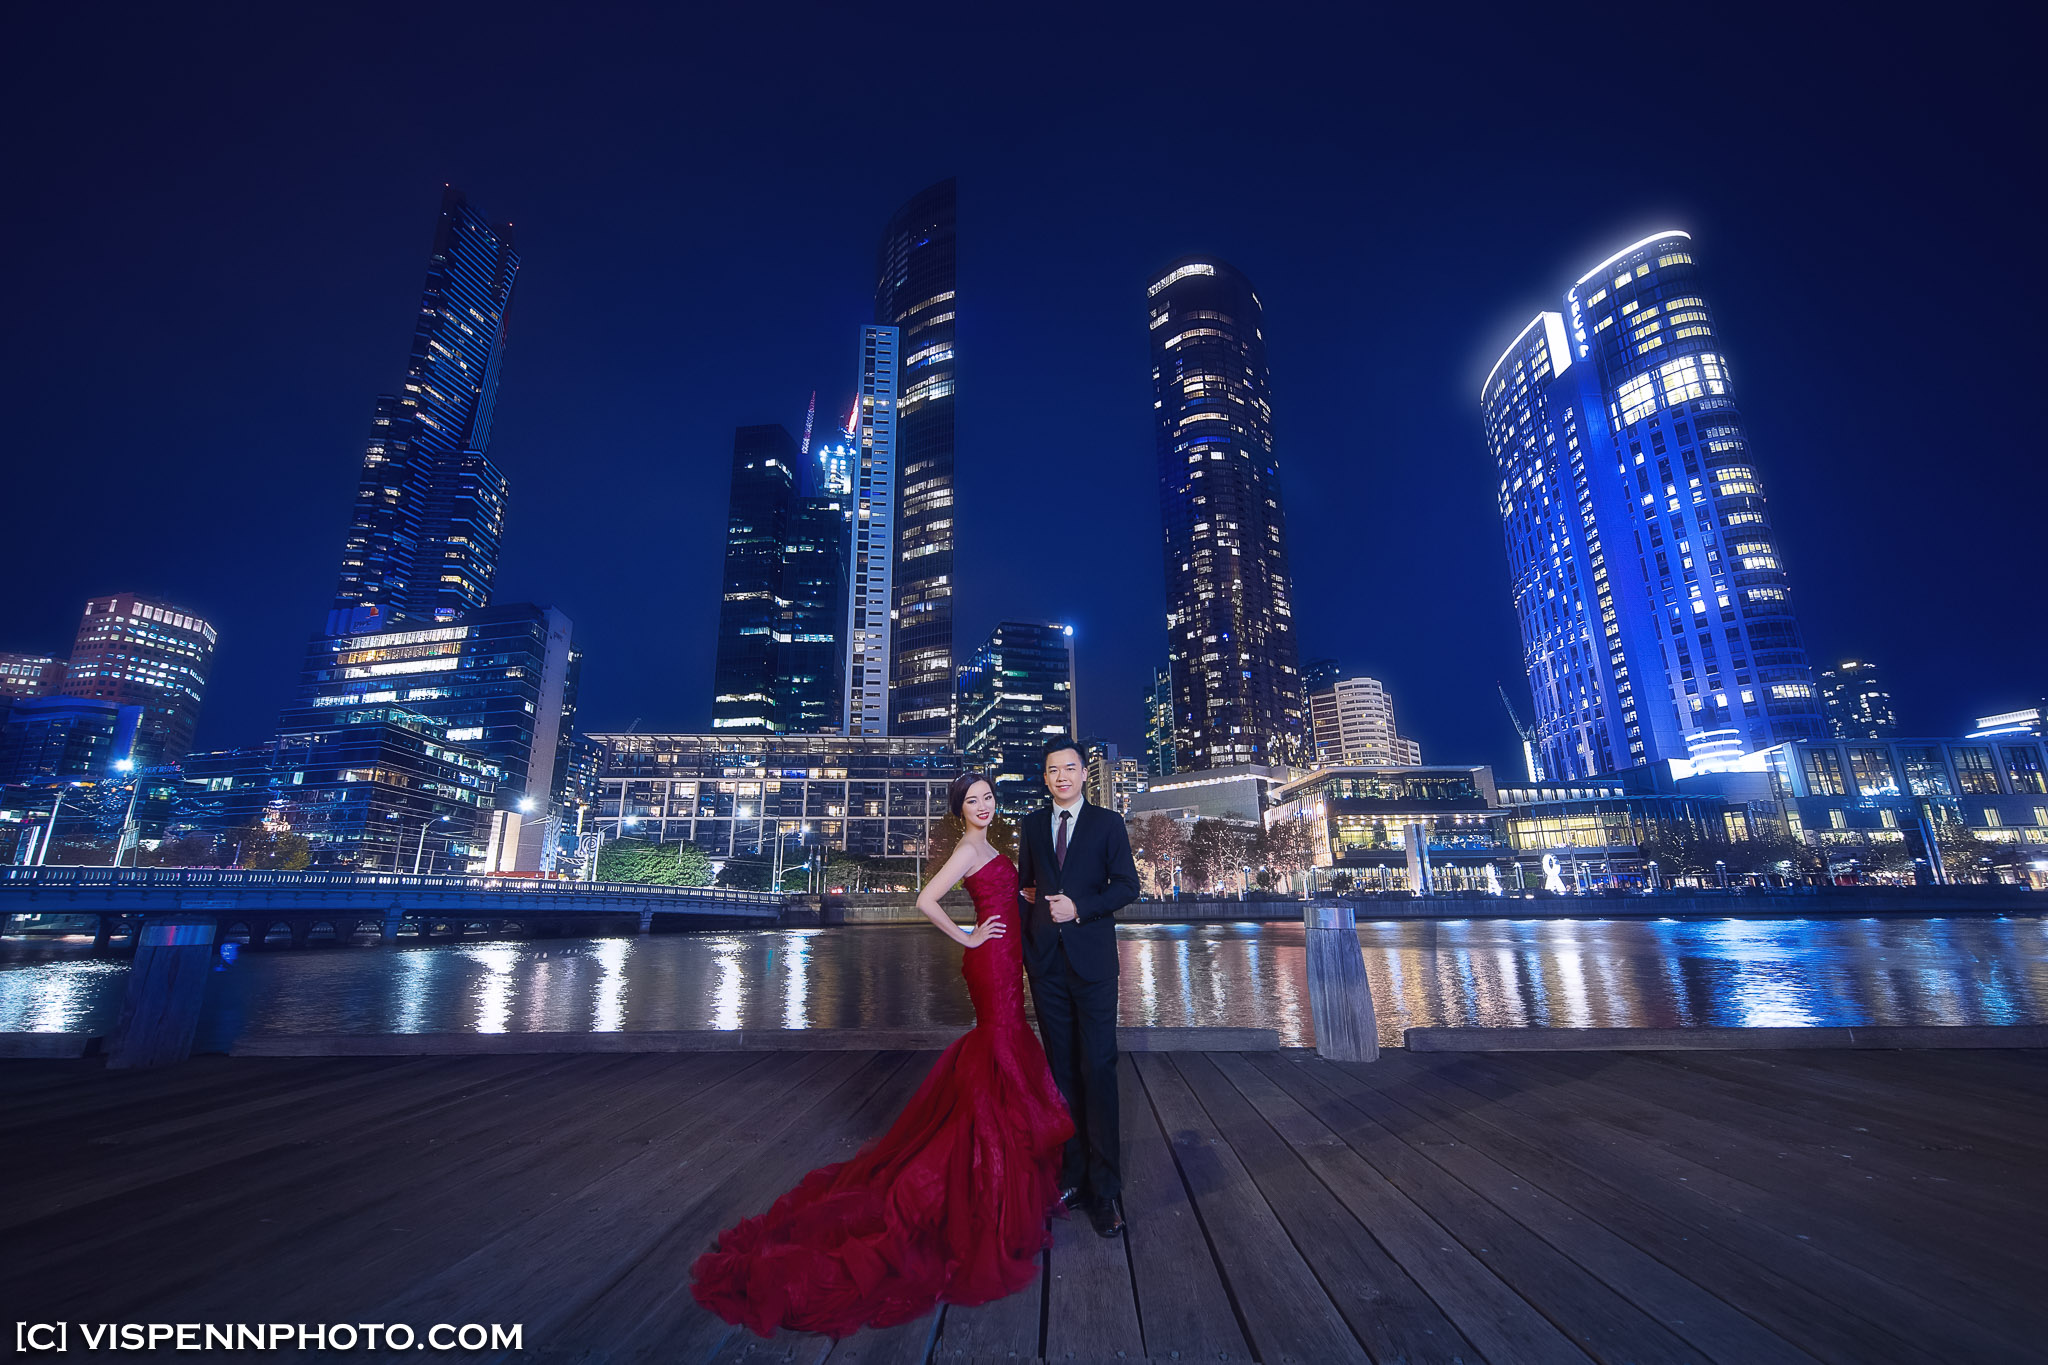 PRE WEDDING Photography Melbourne AndyCHEN 4666 1DX ZHPENN